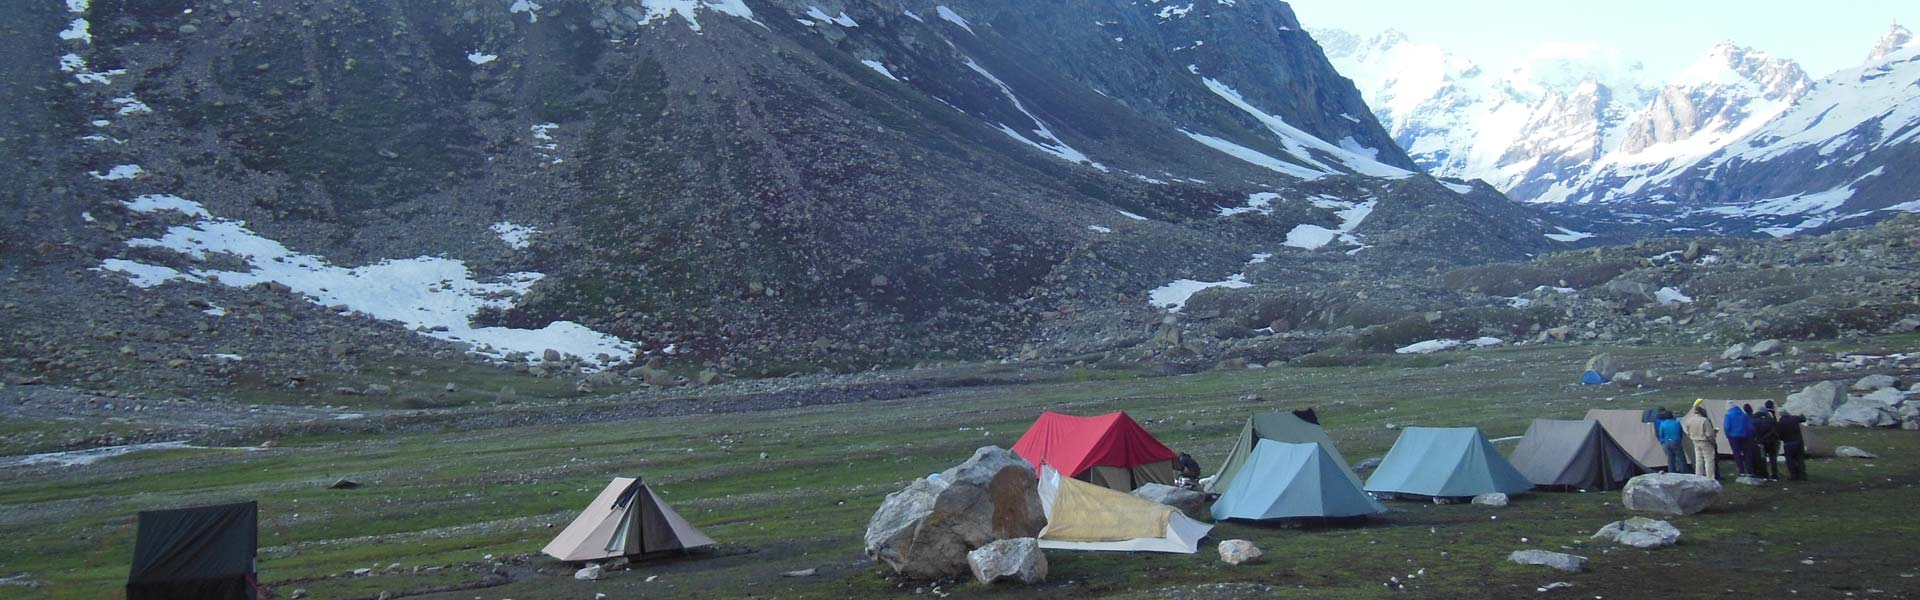 Bhrigu Lake and Trekking in Manali, Camping